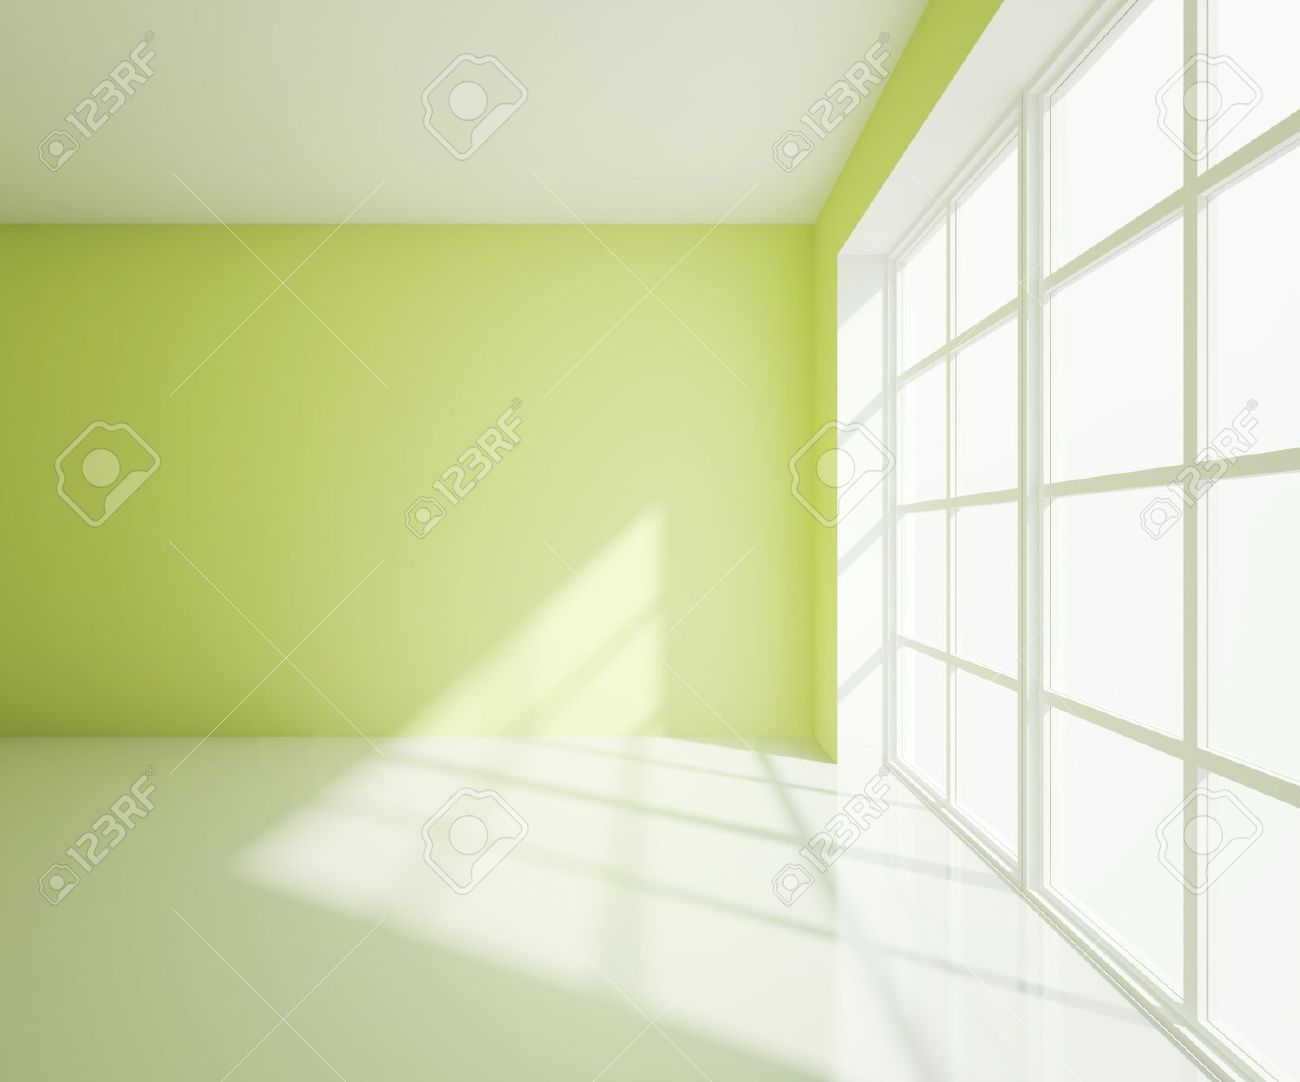 Light Green Paint empty light green room with white window stock photo, picture and